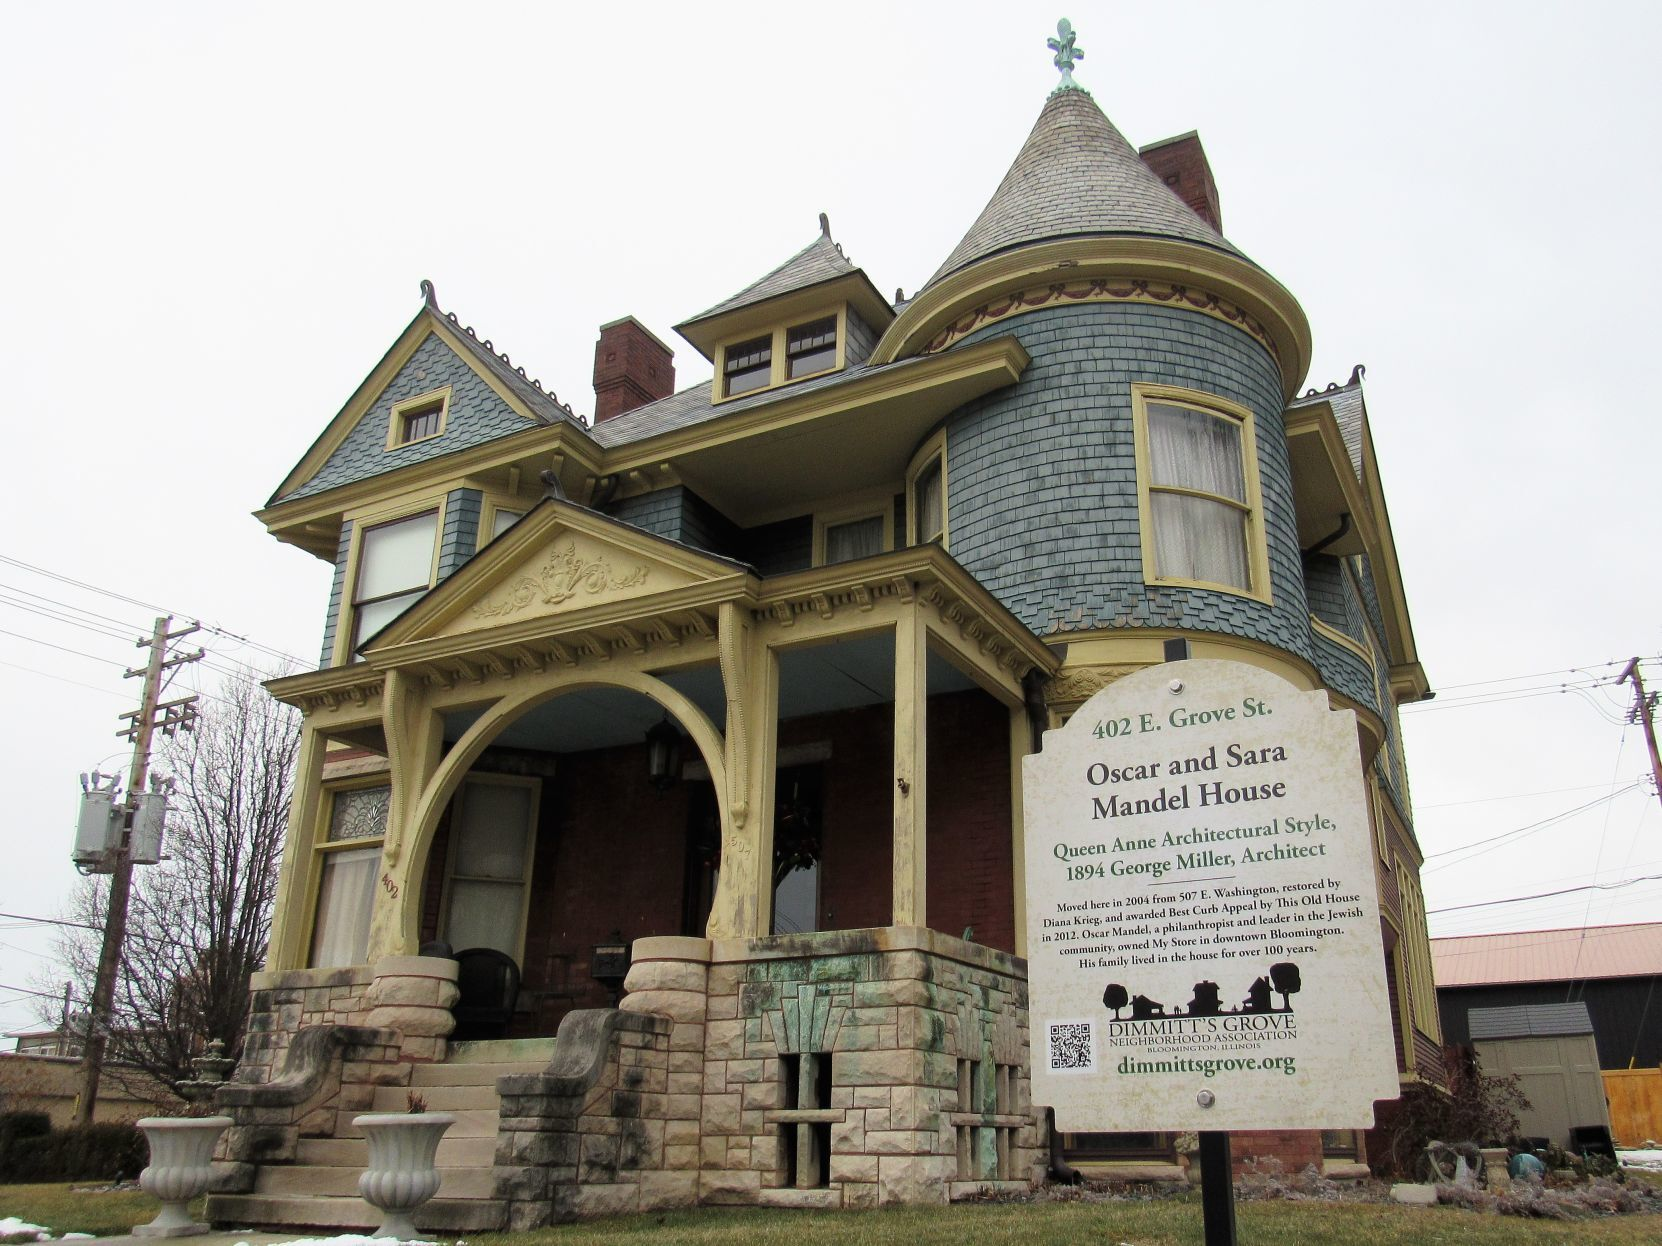 pantagraph.com - Lenore Sobota - Watch now: Architecture, history provide backdrop for walk in Bloomington neighborhood